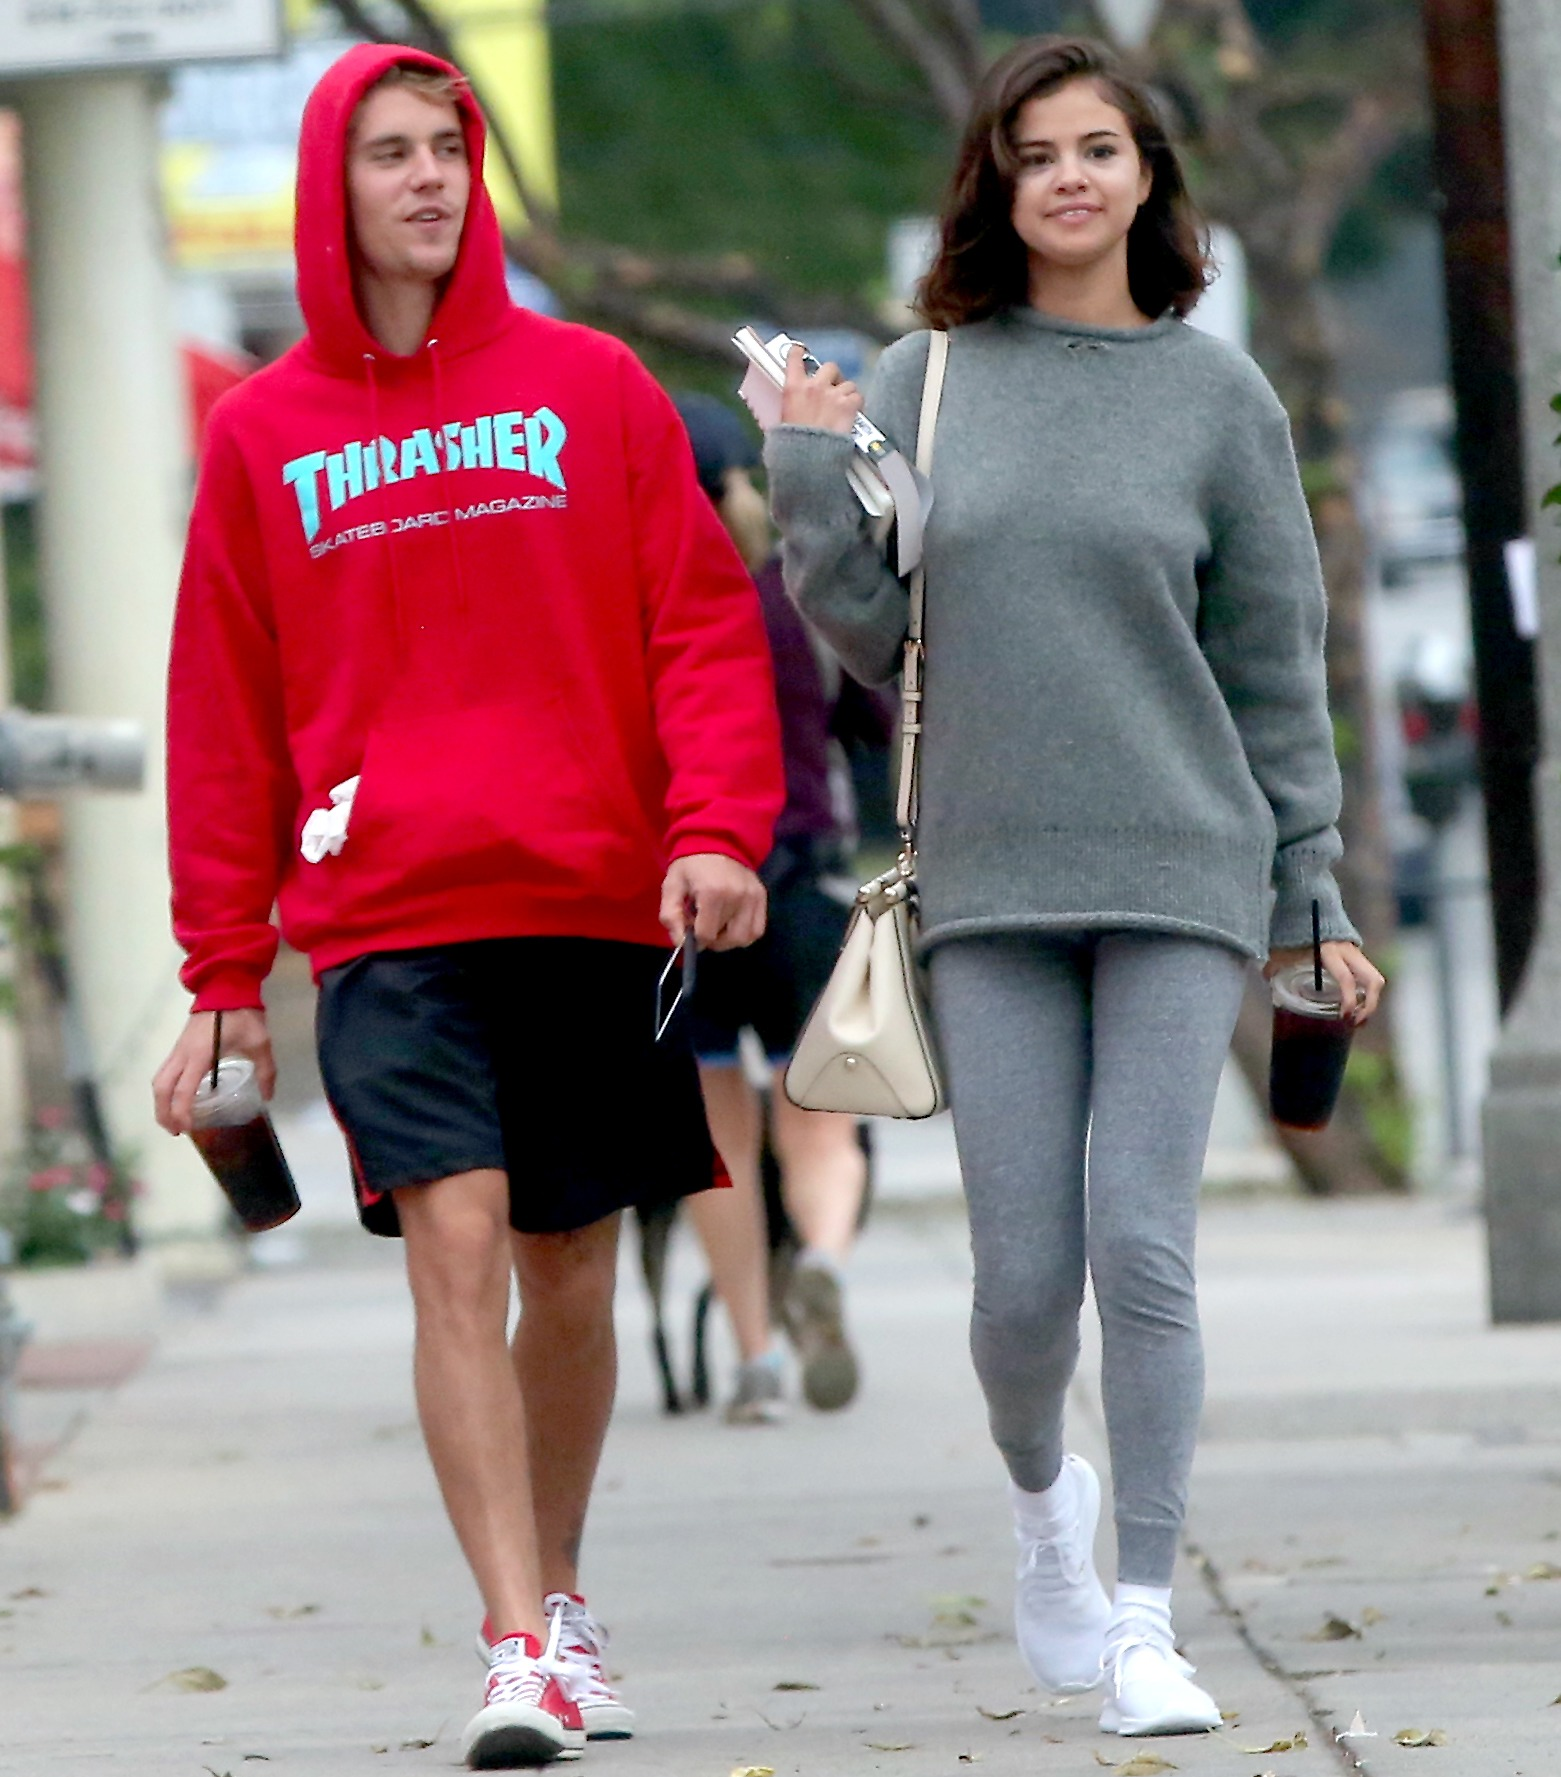 Justin Bieber and Selena Gomez are walking on the street. Justin is wearing a red hoodie and Selena is wearing grey clothes.